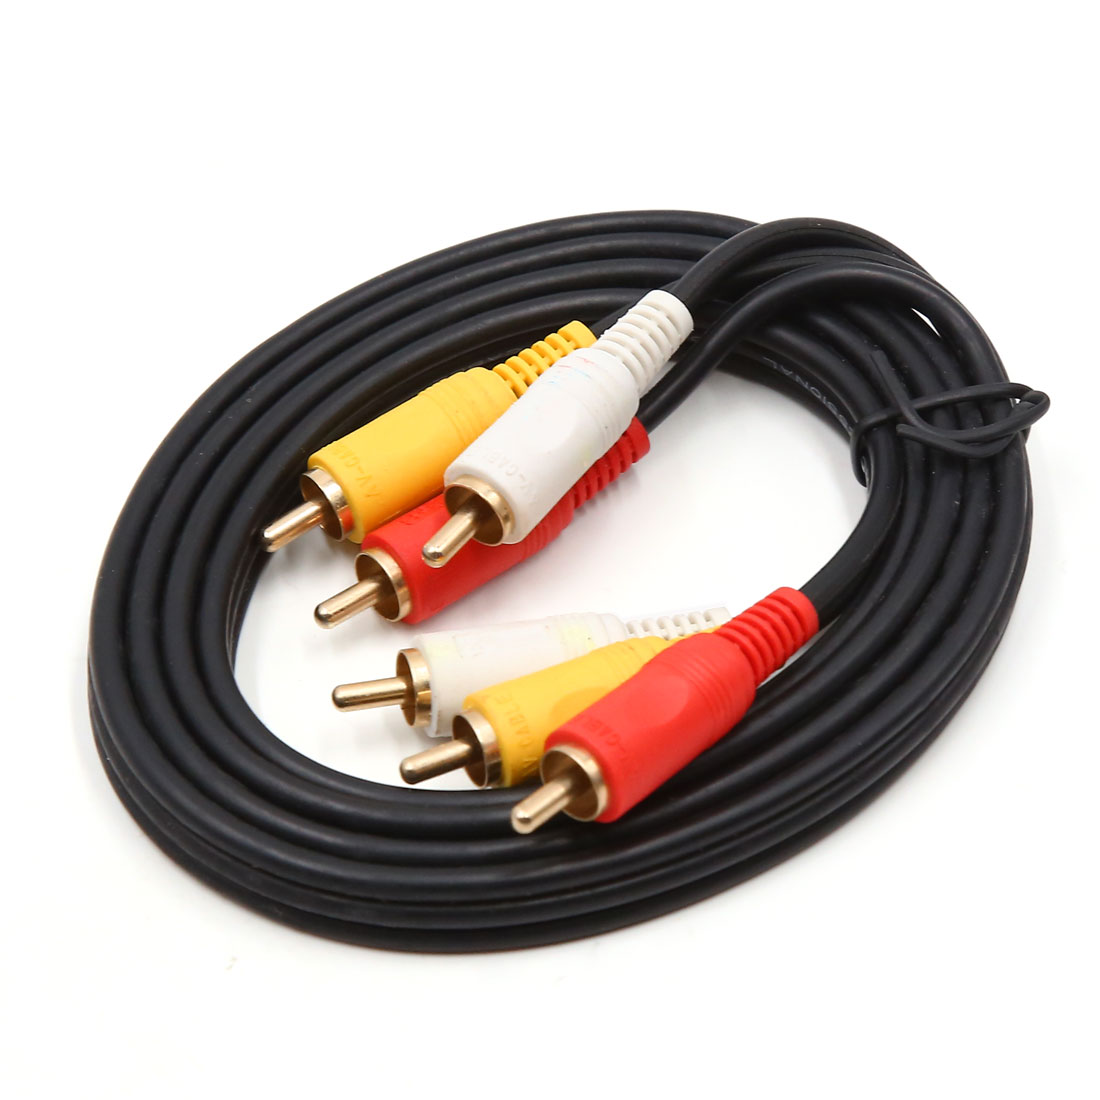 1.5m 3RCA to 3RCA Male to Male Composite Audio Video AV Extention Cord Cable